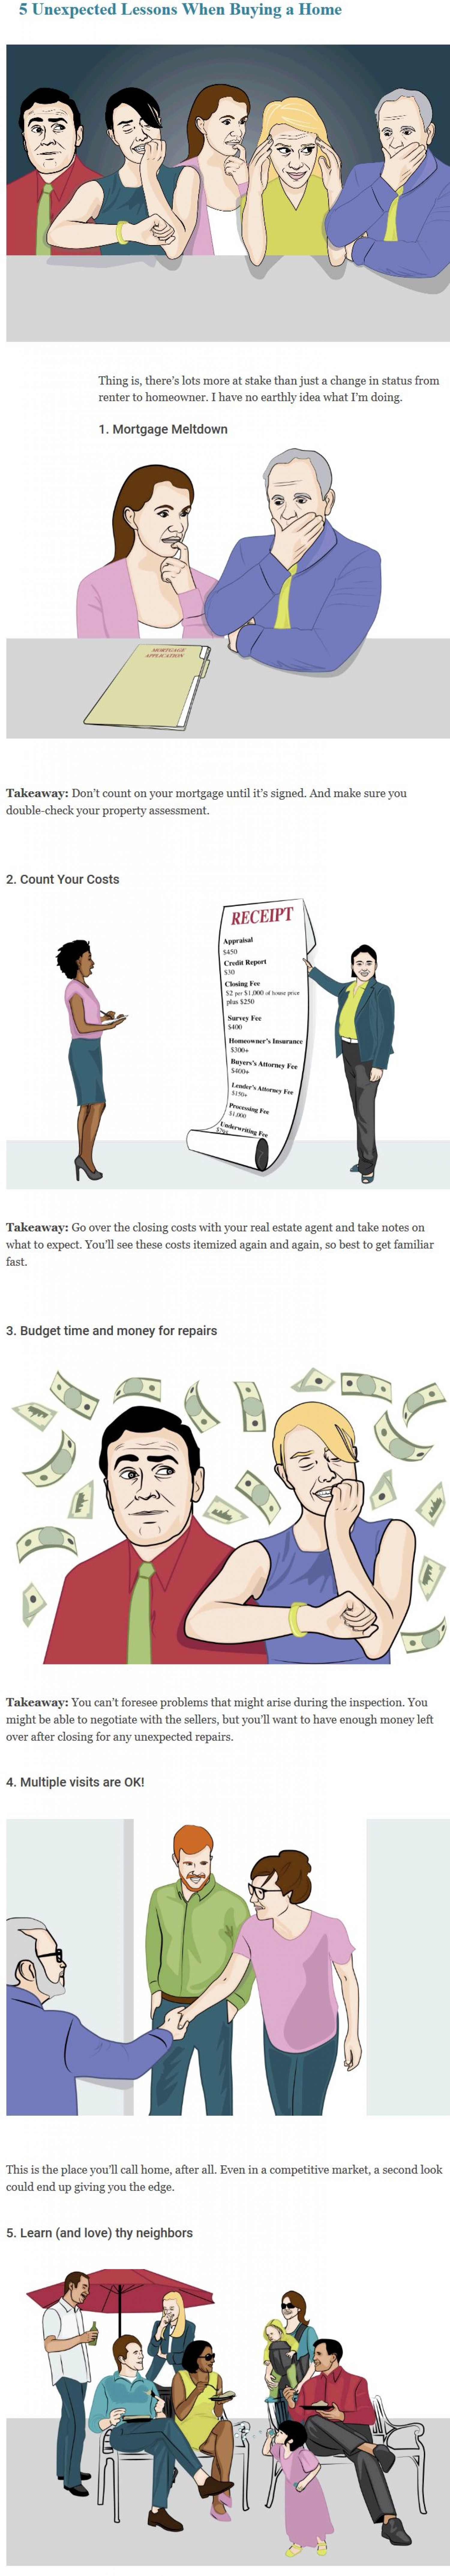 Top 5 Unexpected Lessons When Buying a Home Infographic